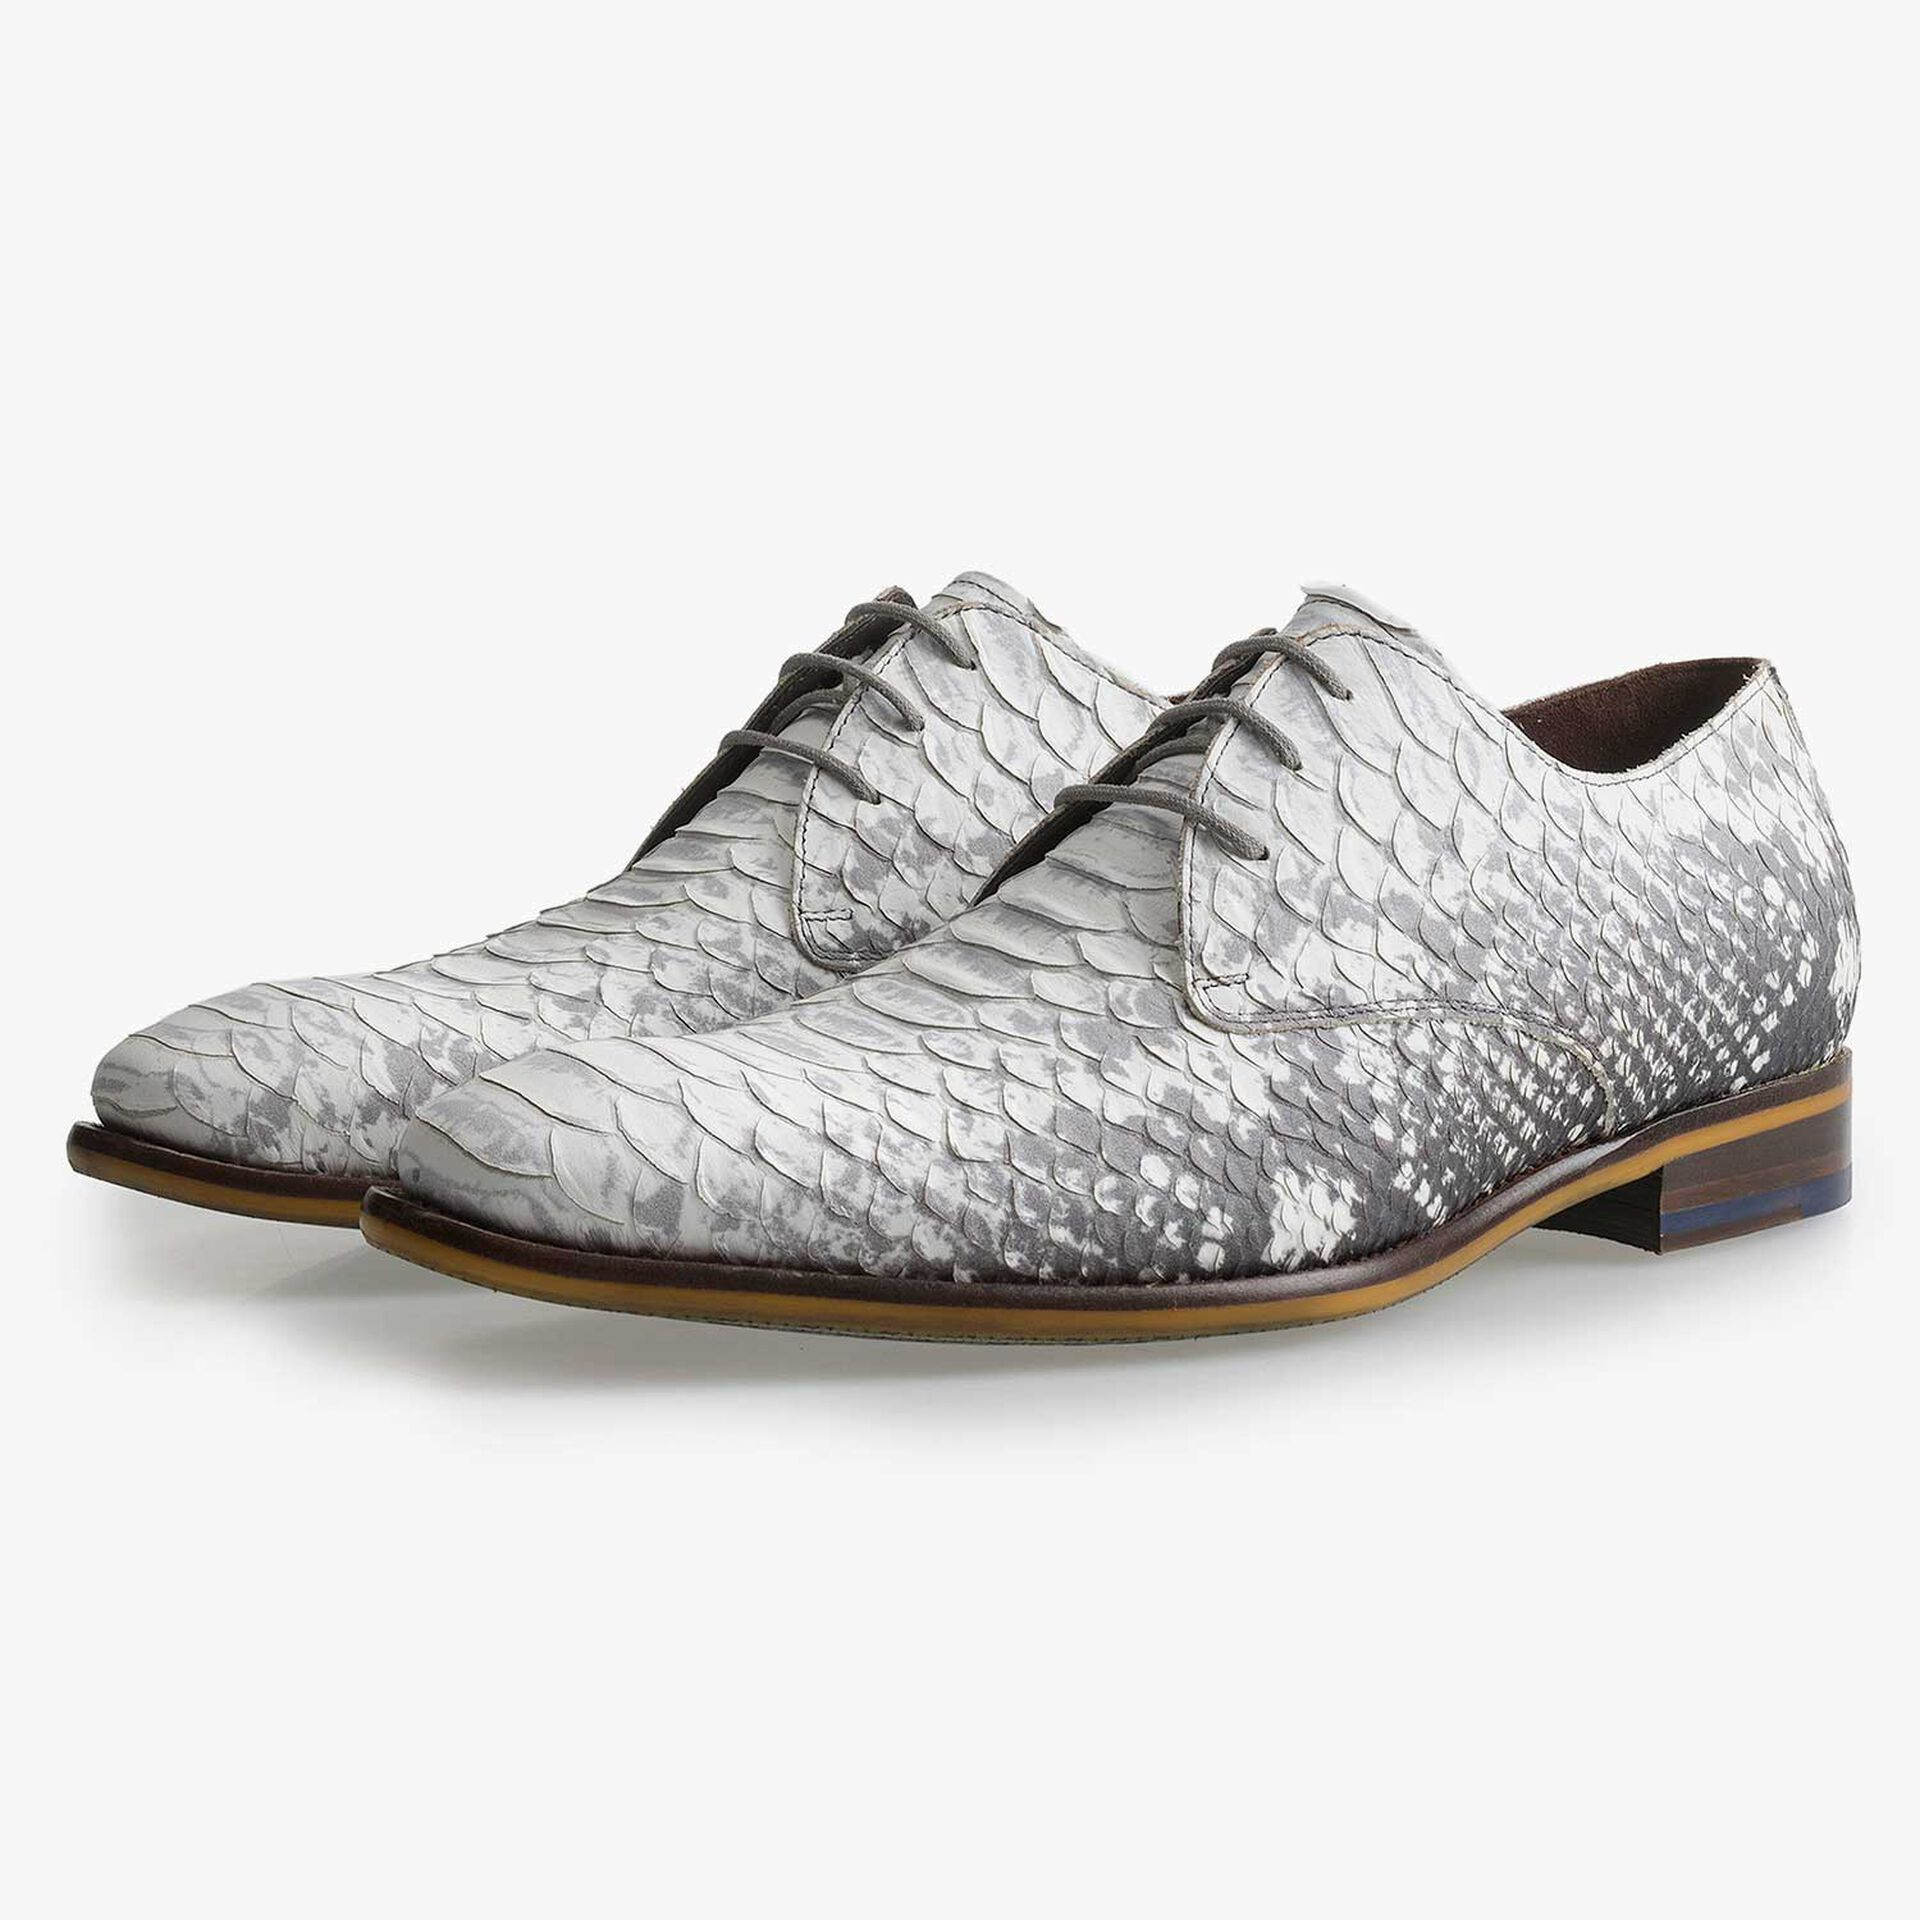 Grey leather lace shoe with snake print